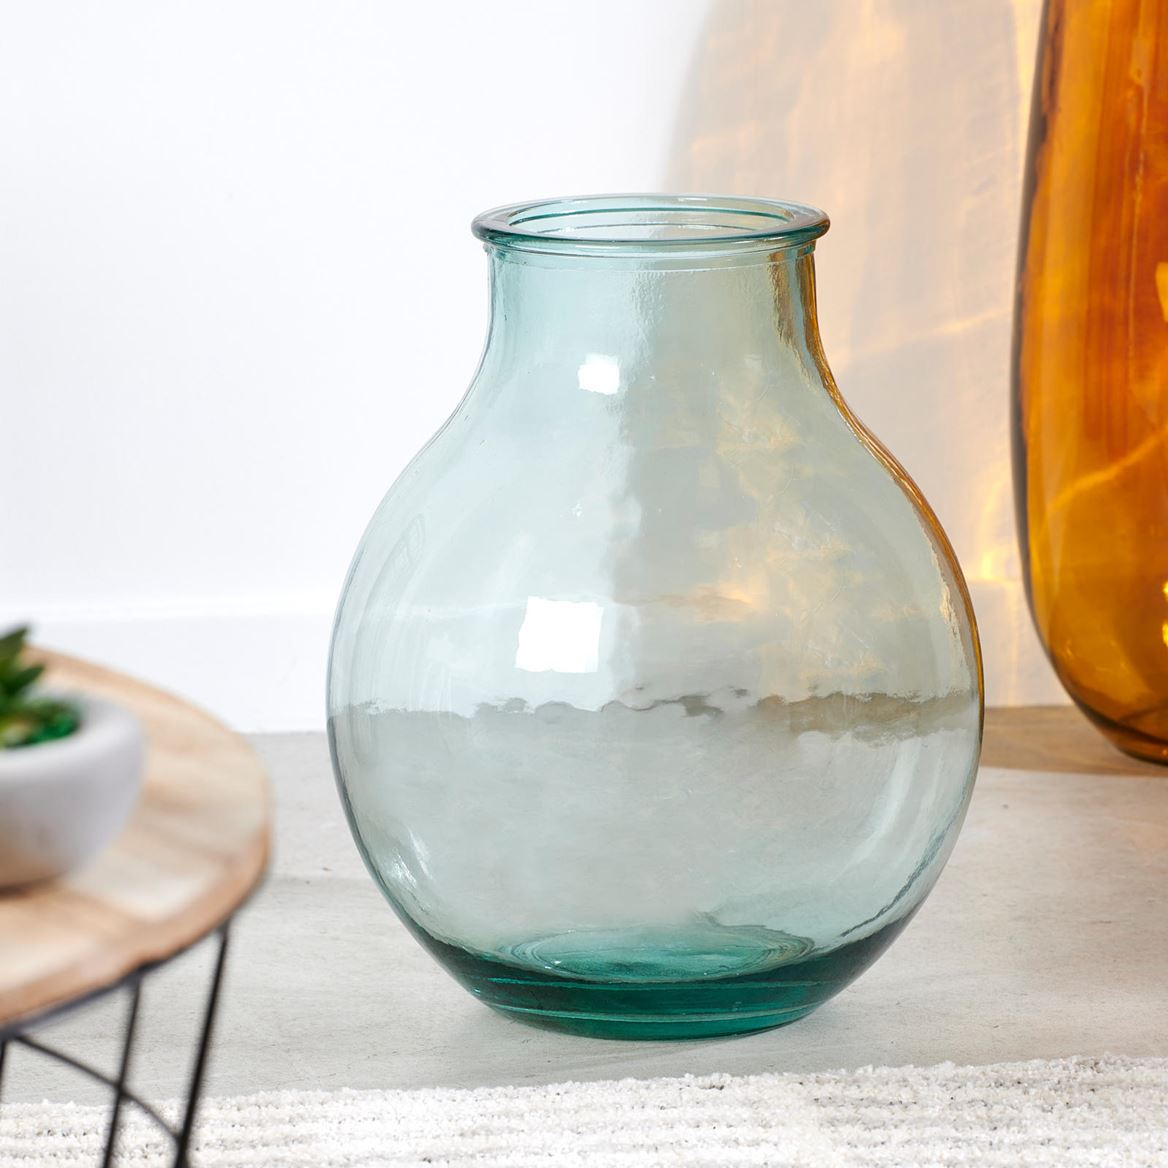 BULBE Vase Transparent H 36 cm_bulbe-vase-transparent-h-36-cm